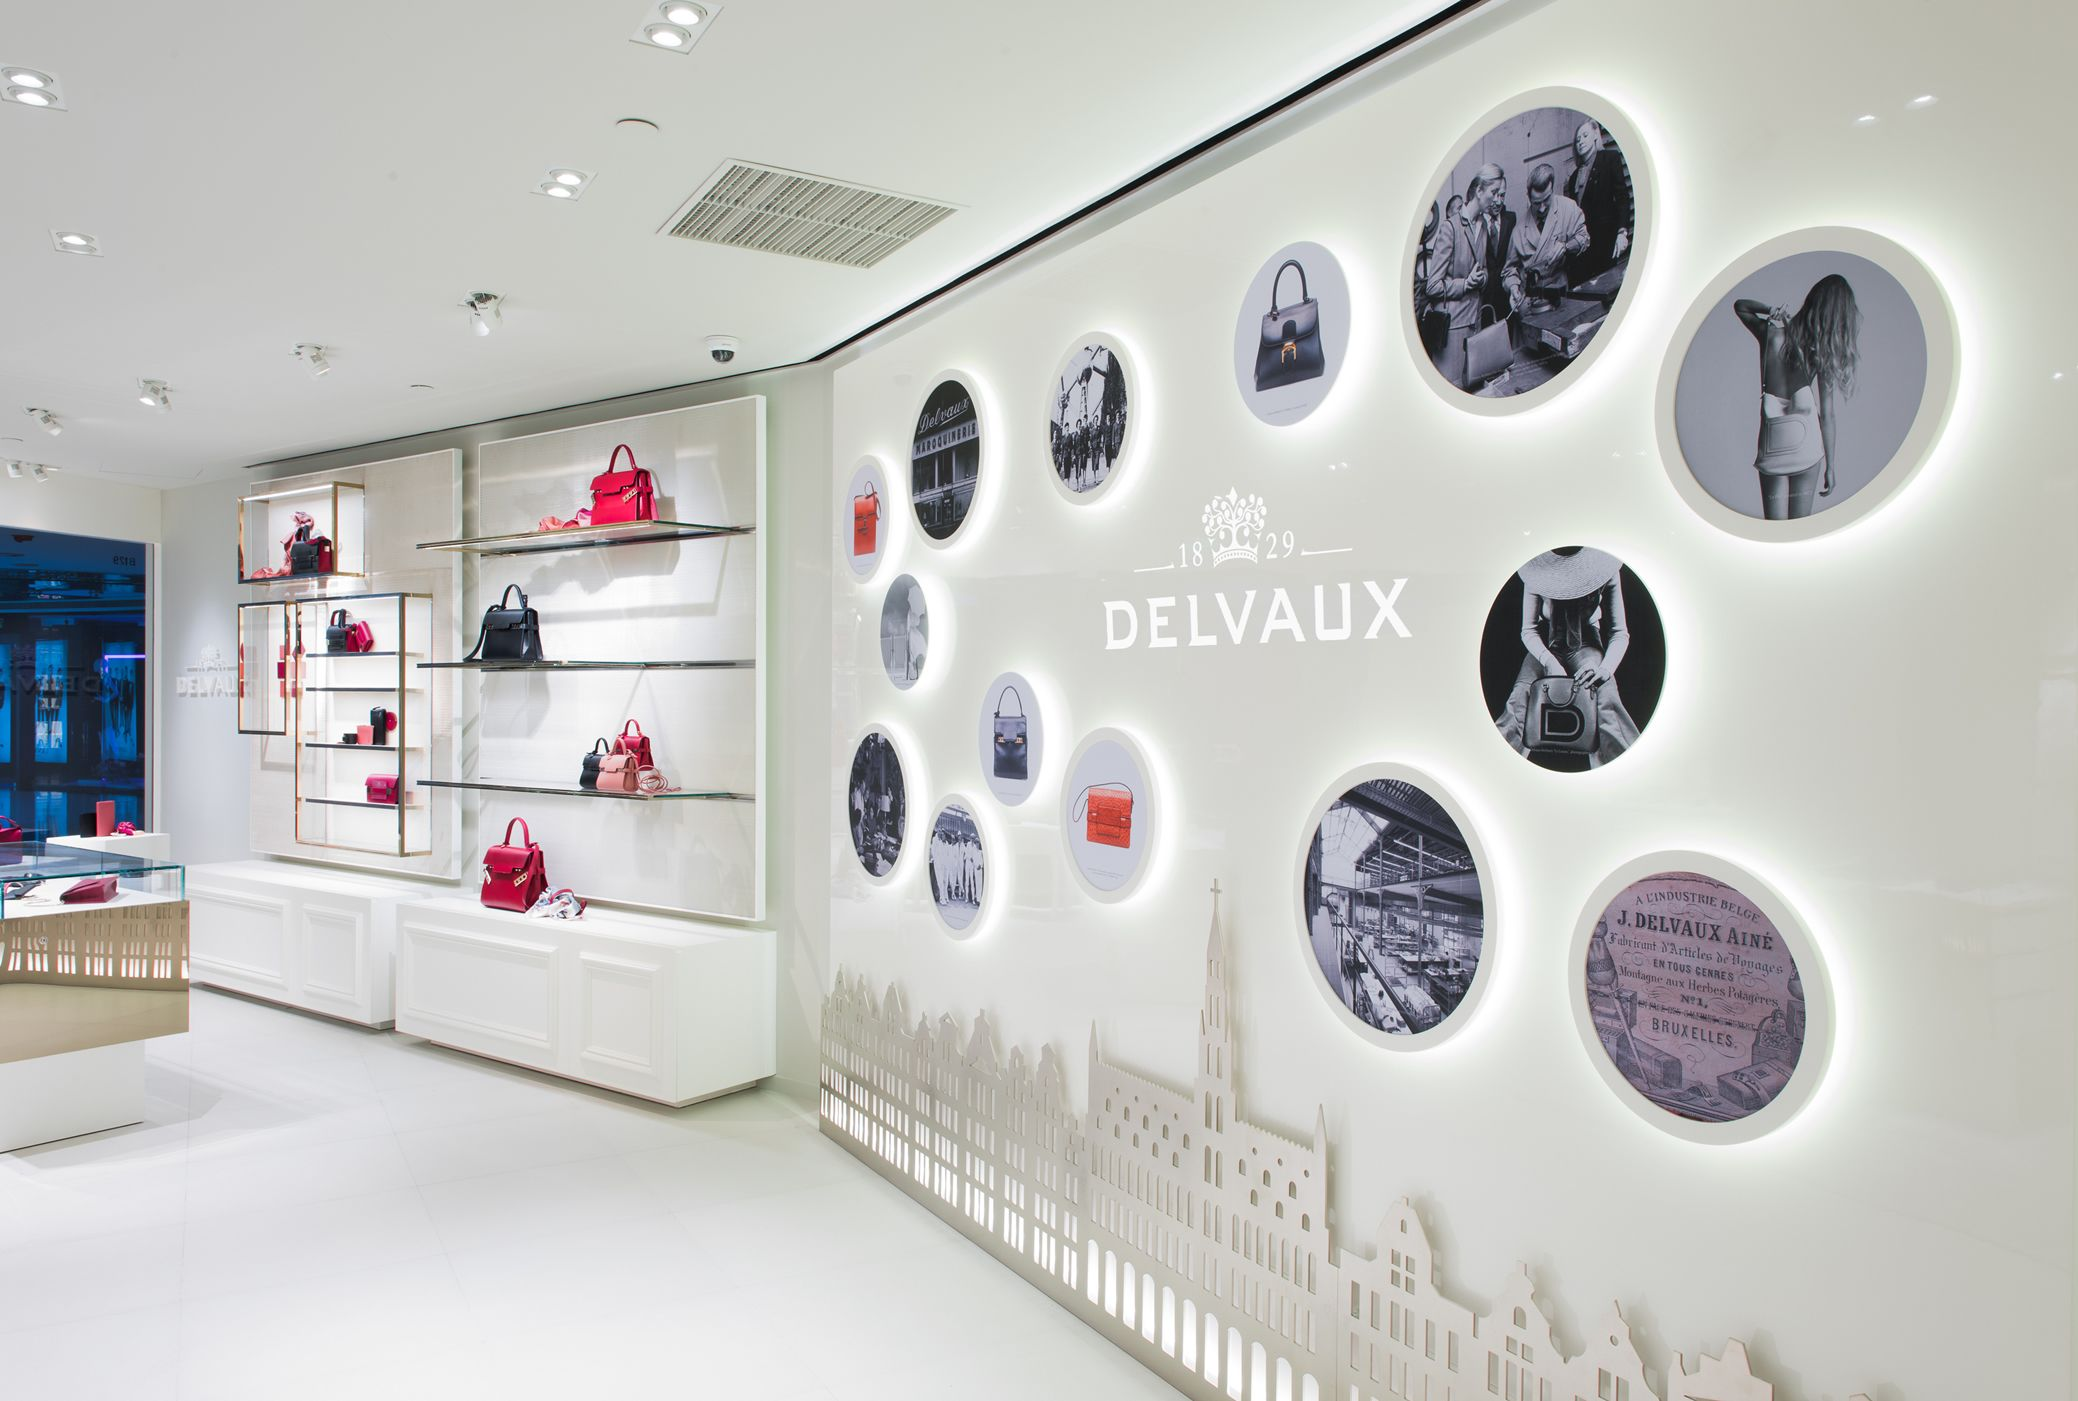 Delvaux opens new store in Shanghai at Plaza 66 Mall